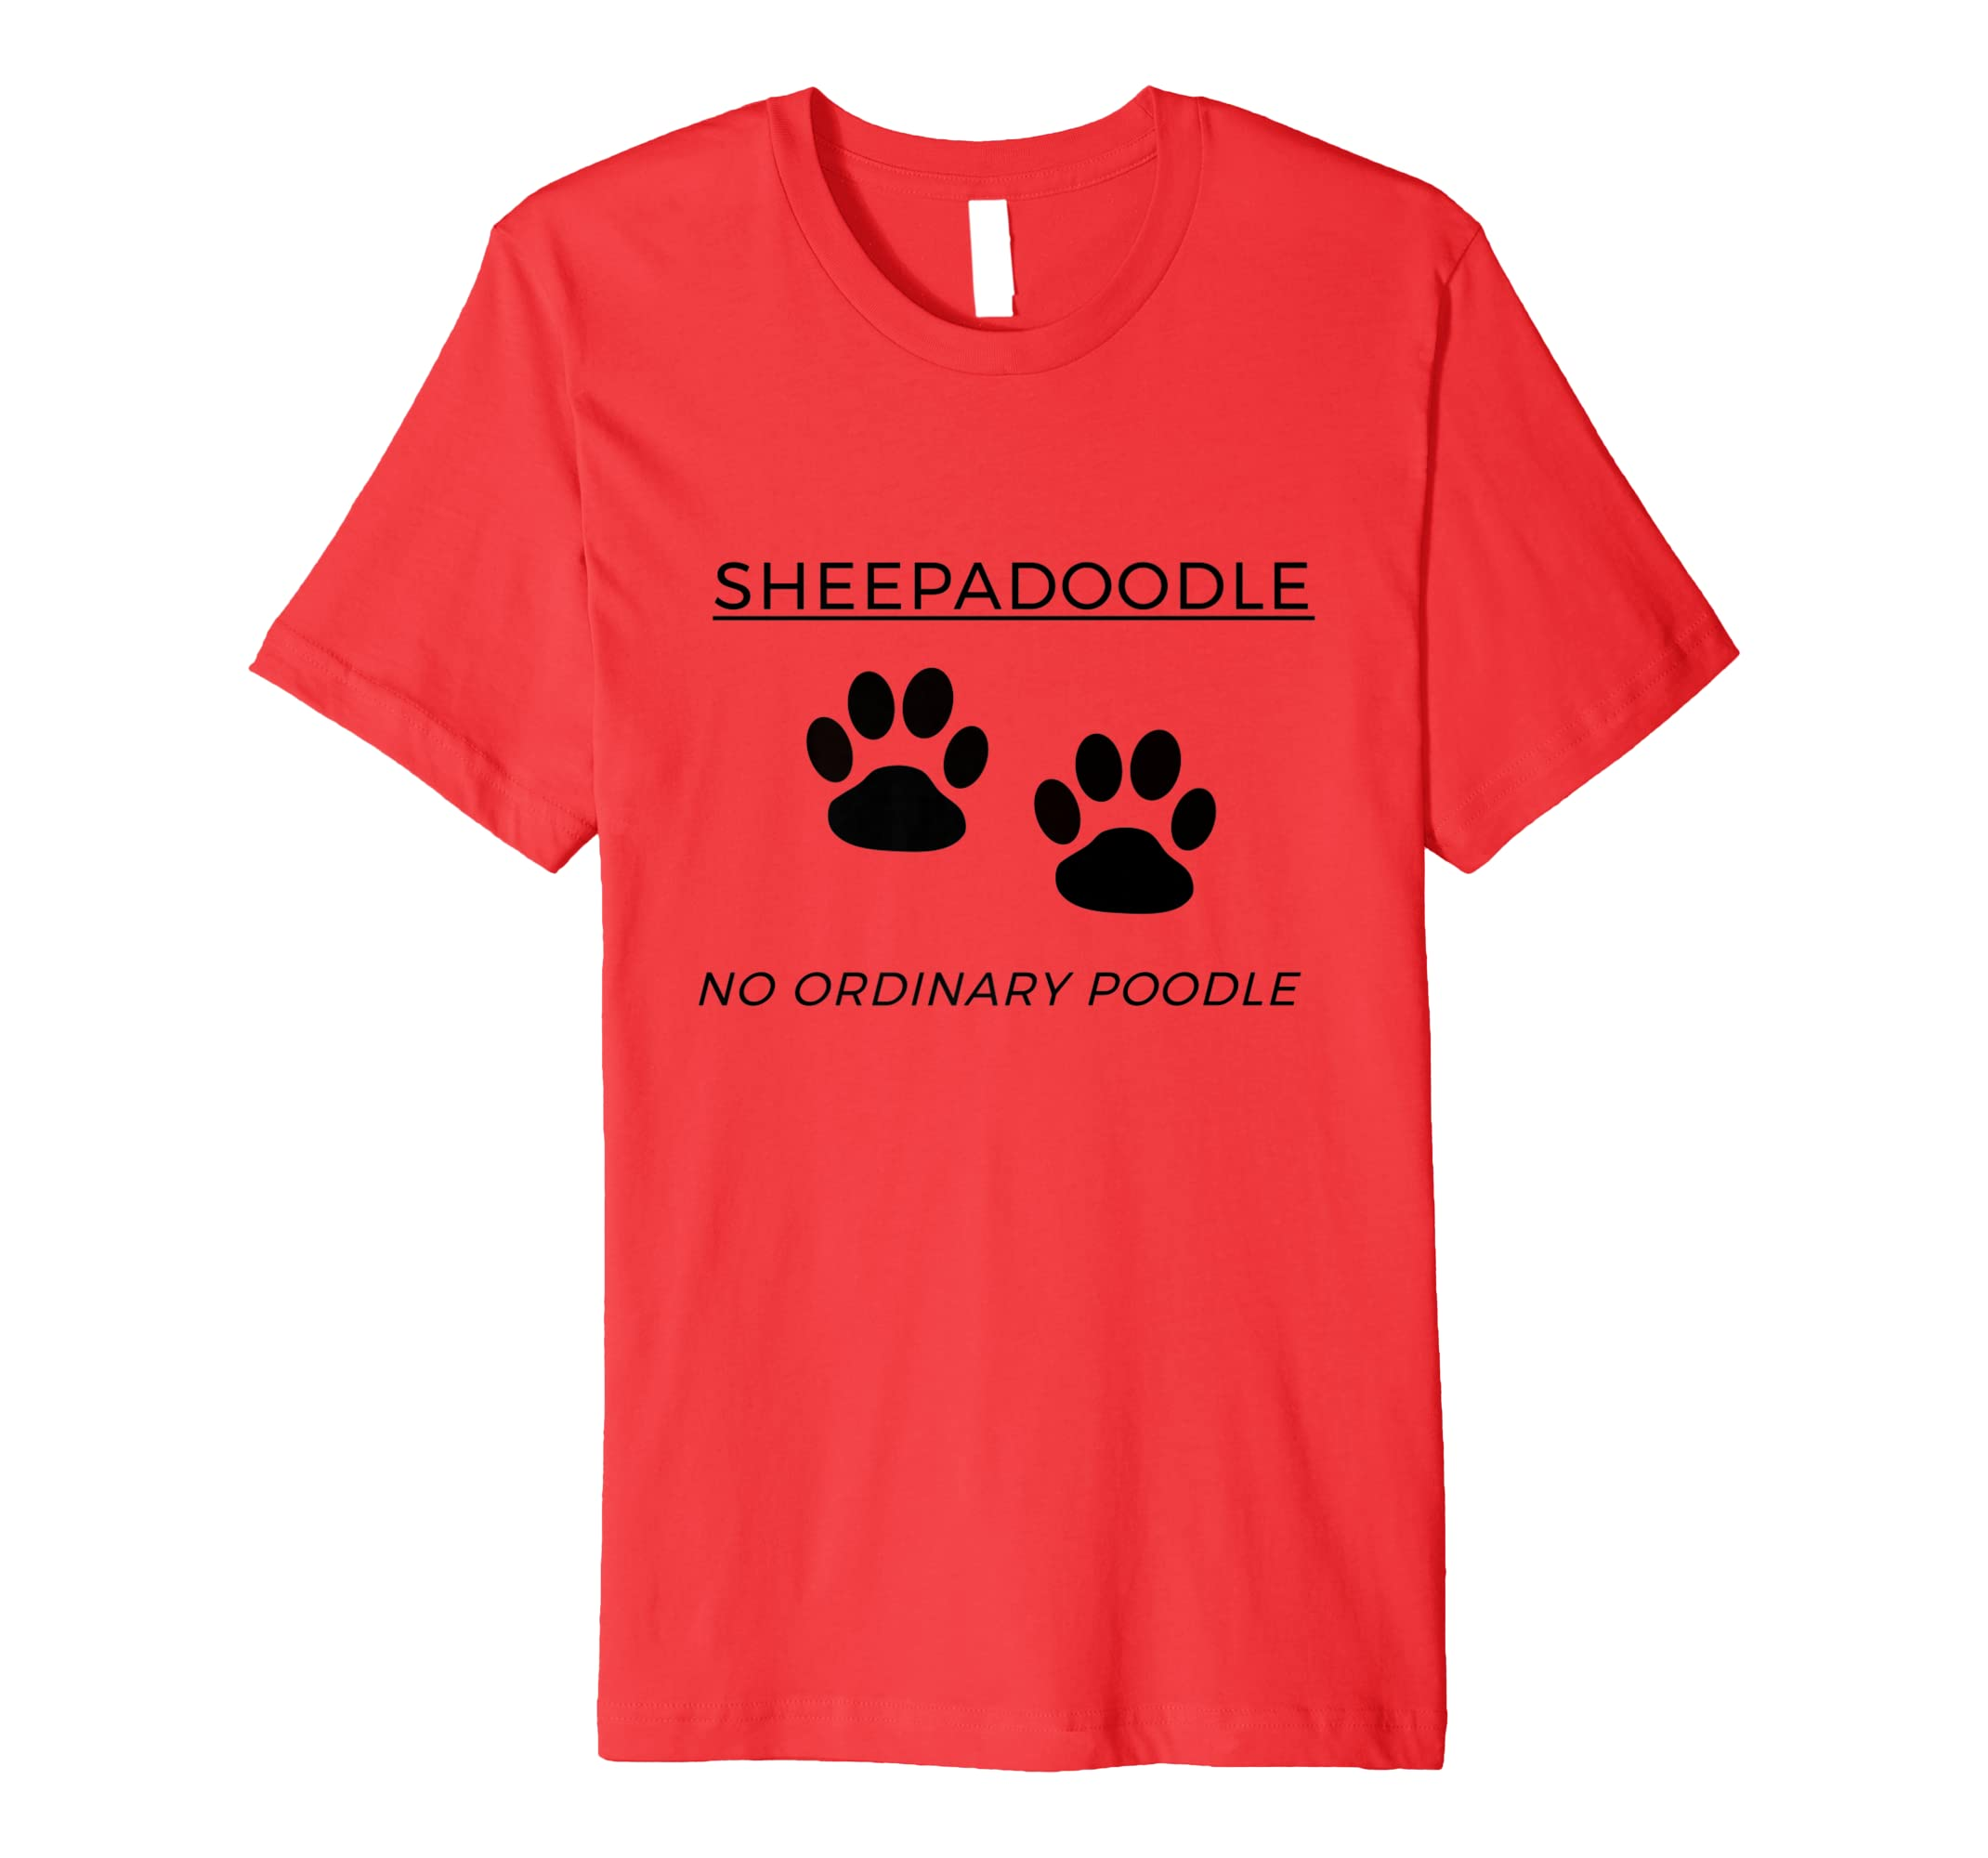 Amazon com: SHEEPADOODLE NO ORDINARY POODLE: Clothing